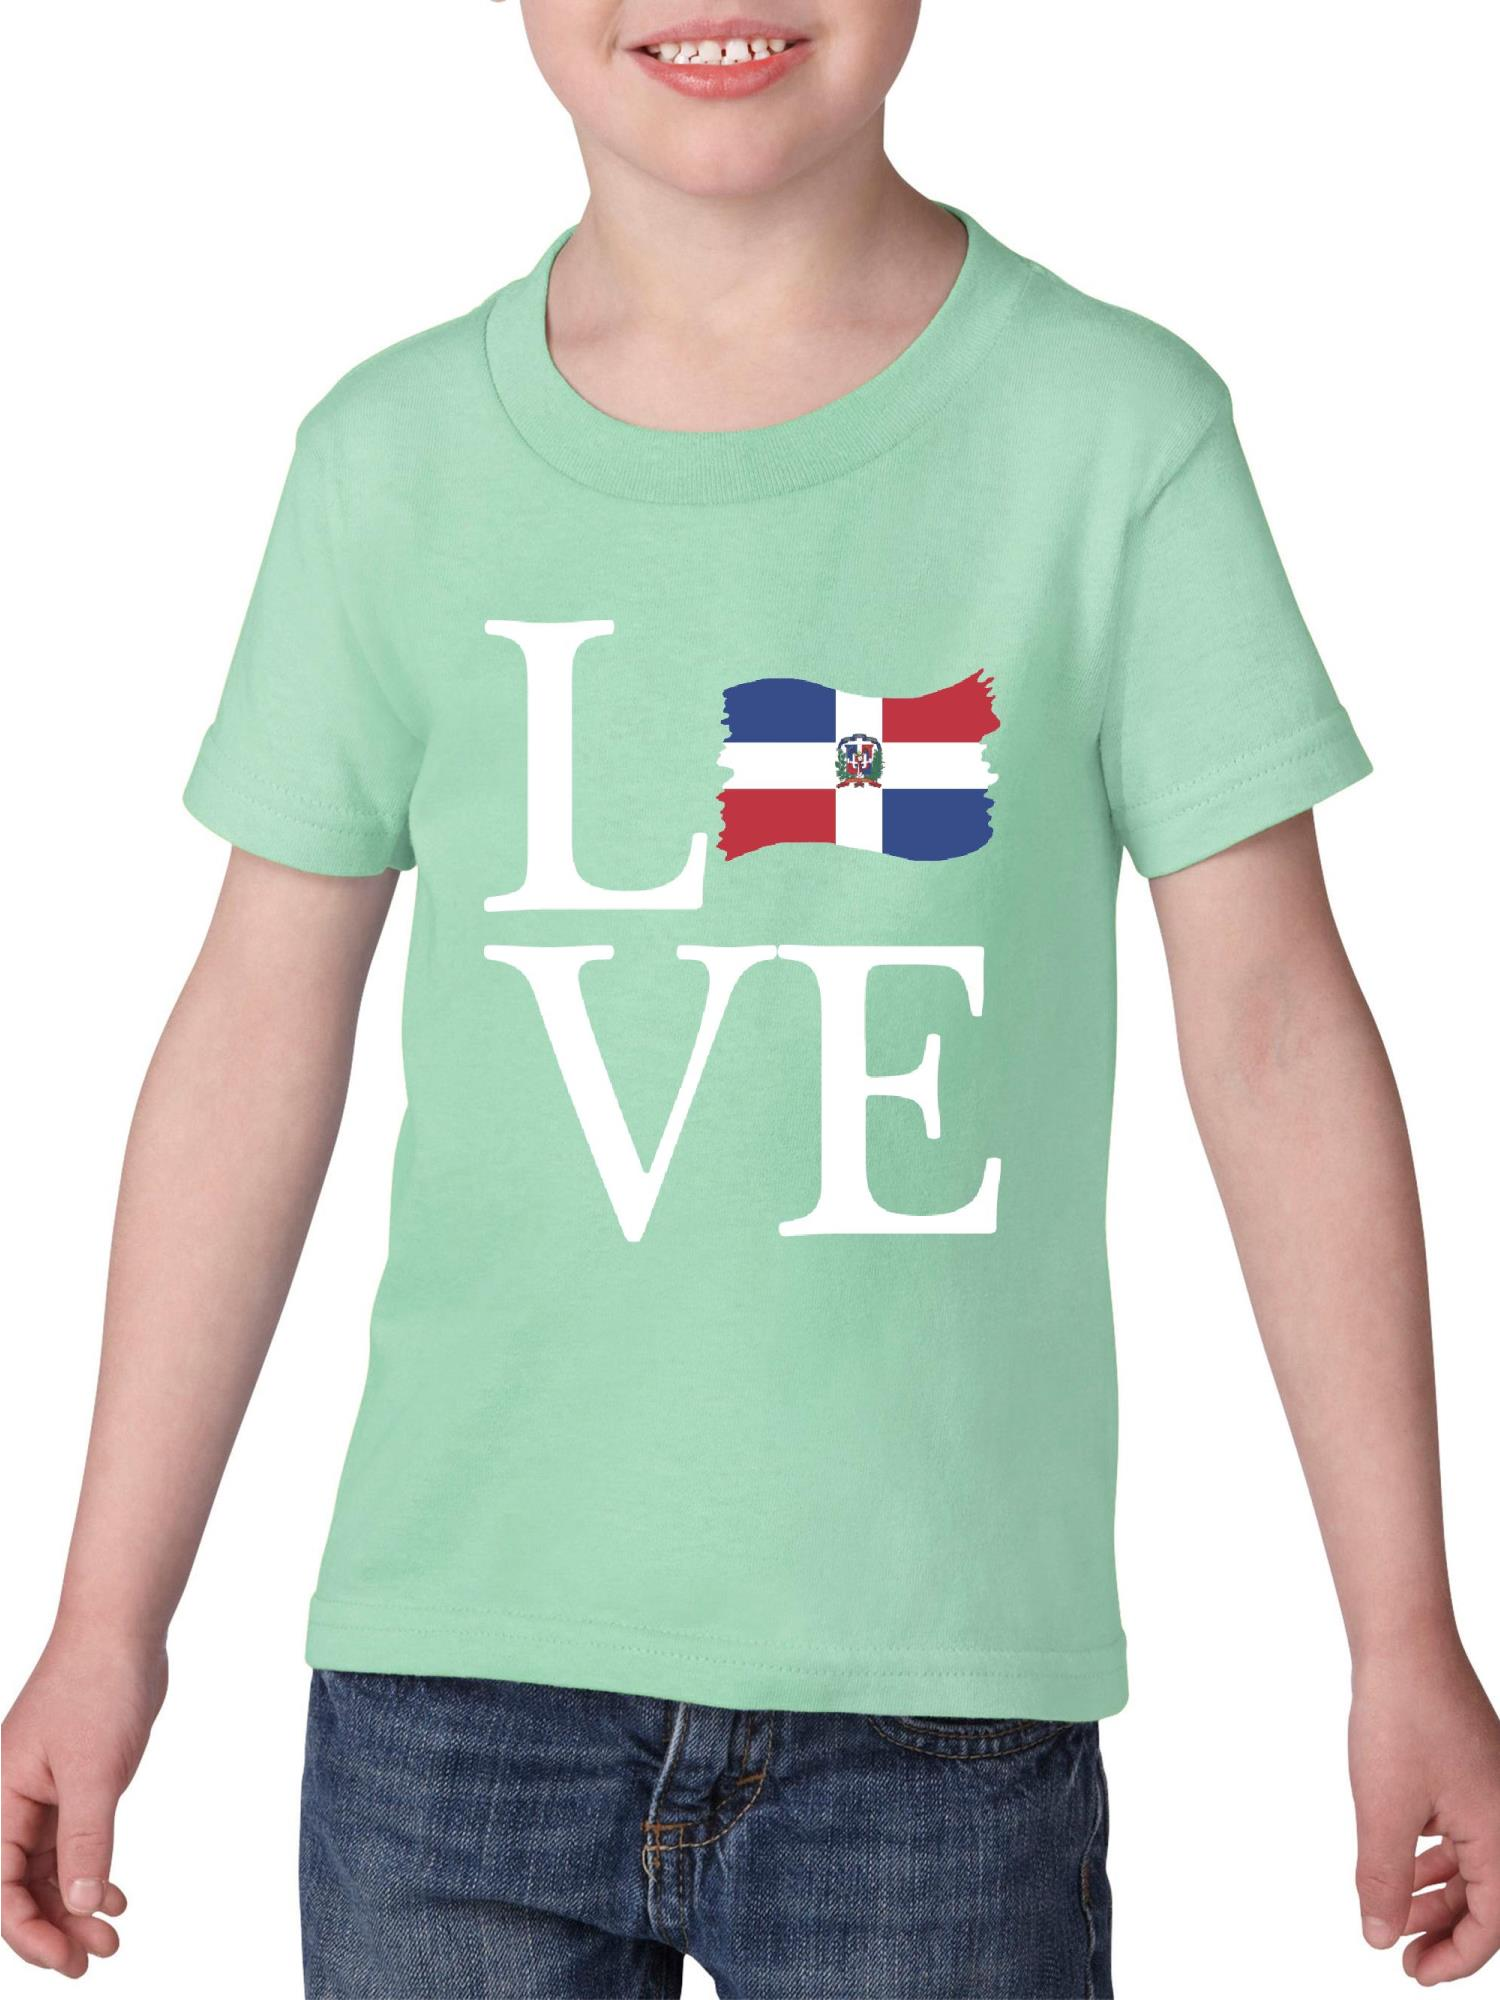 Love Dominican Republic Heavy Cotton Toddler Kids T-Shirt Tee Clothing